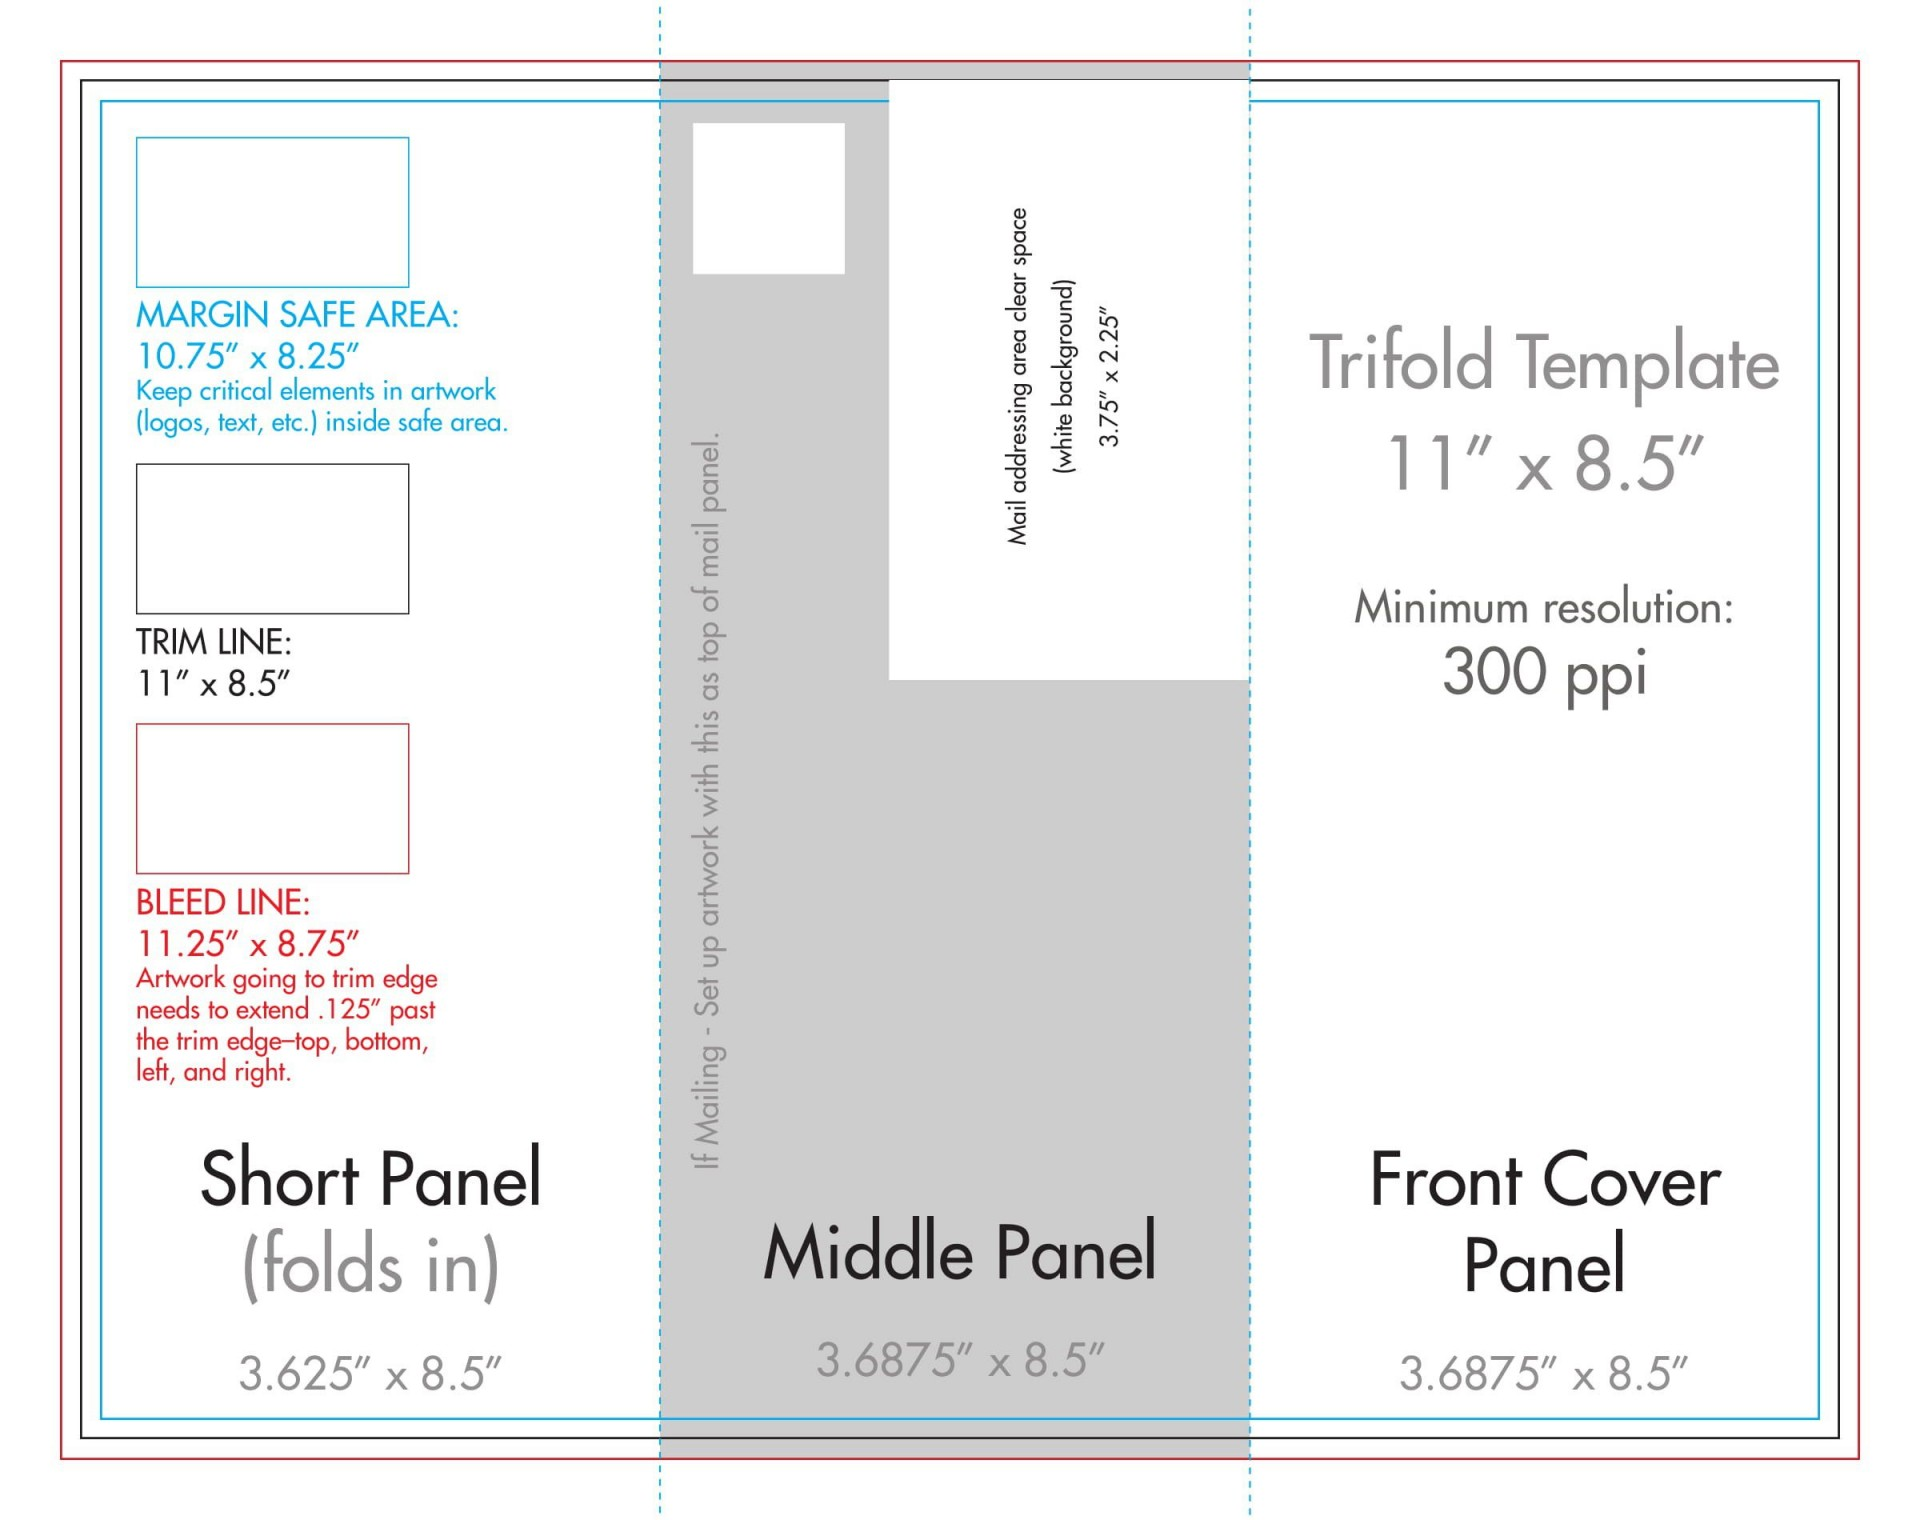 009 Fantastic Template For Trifold Brochure Sample  Tri Fold Indesign A4 Free In Word Download1920